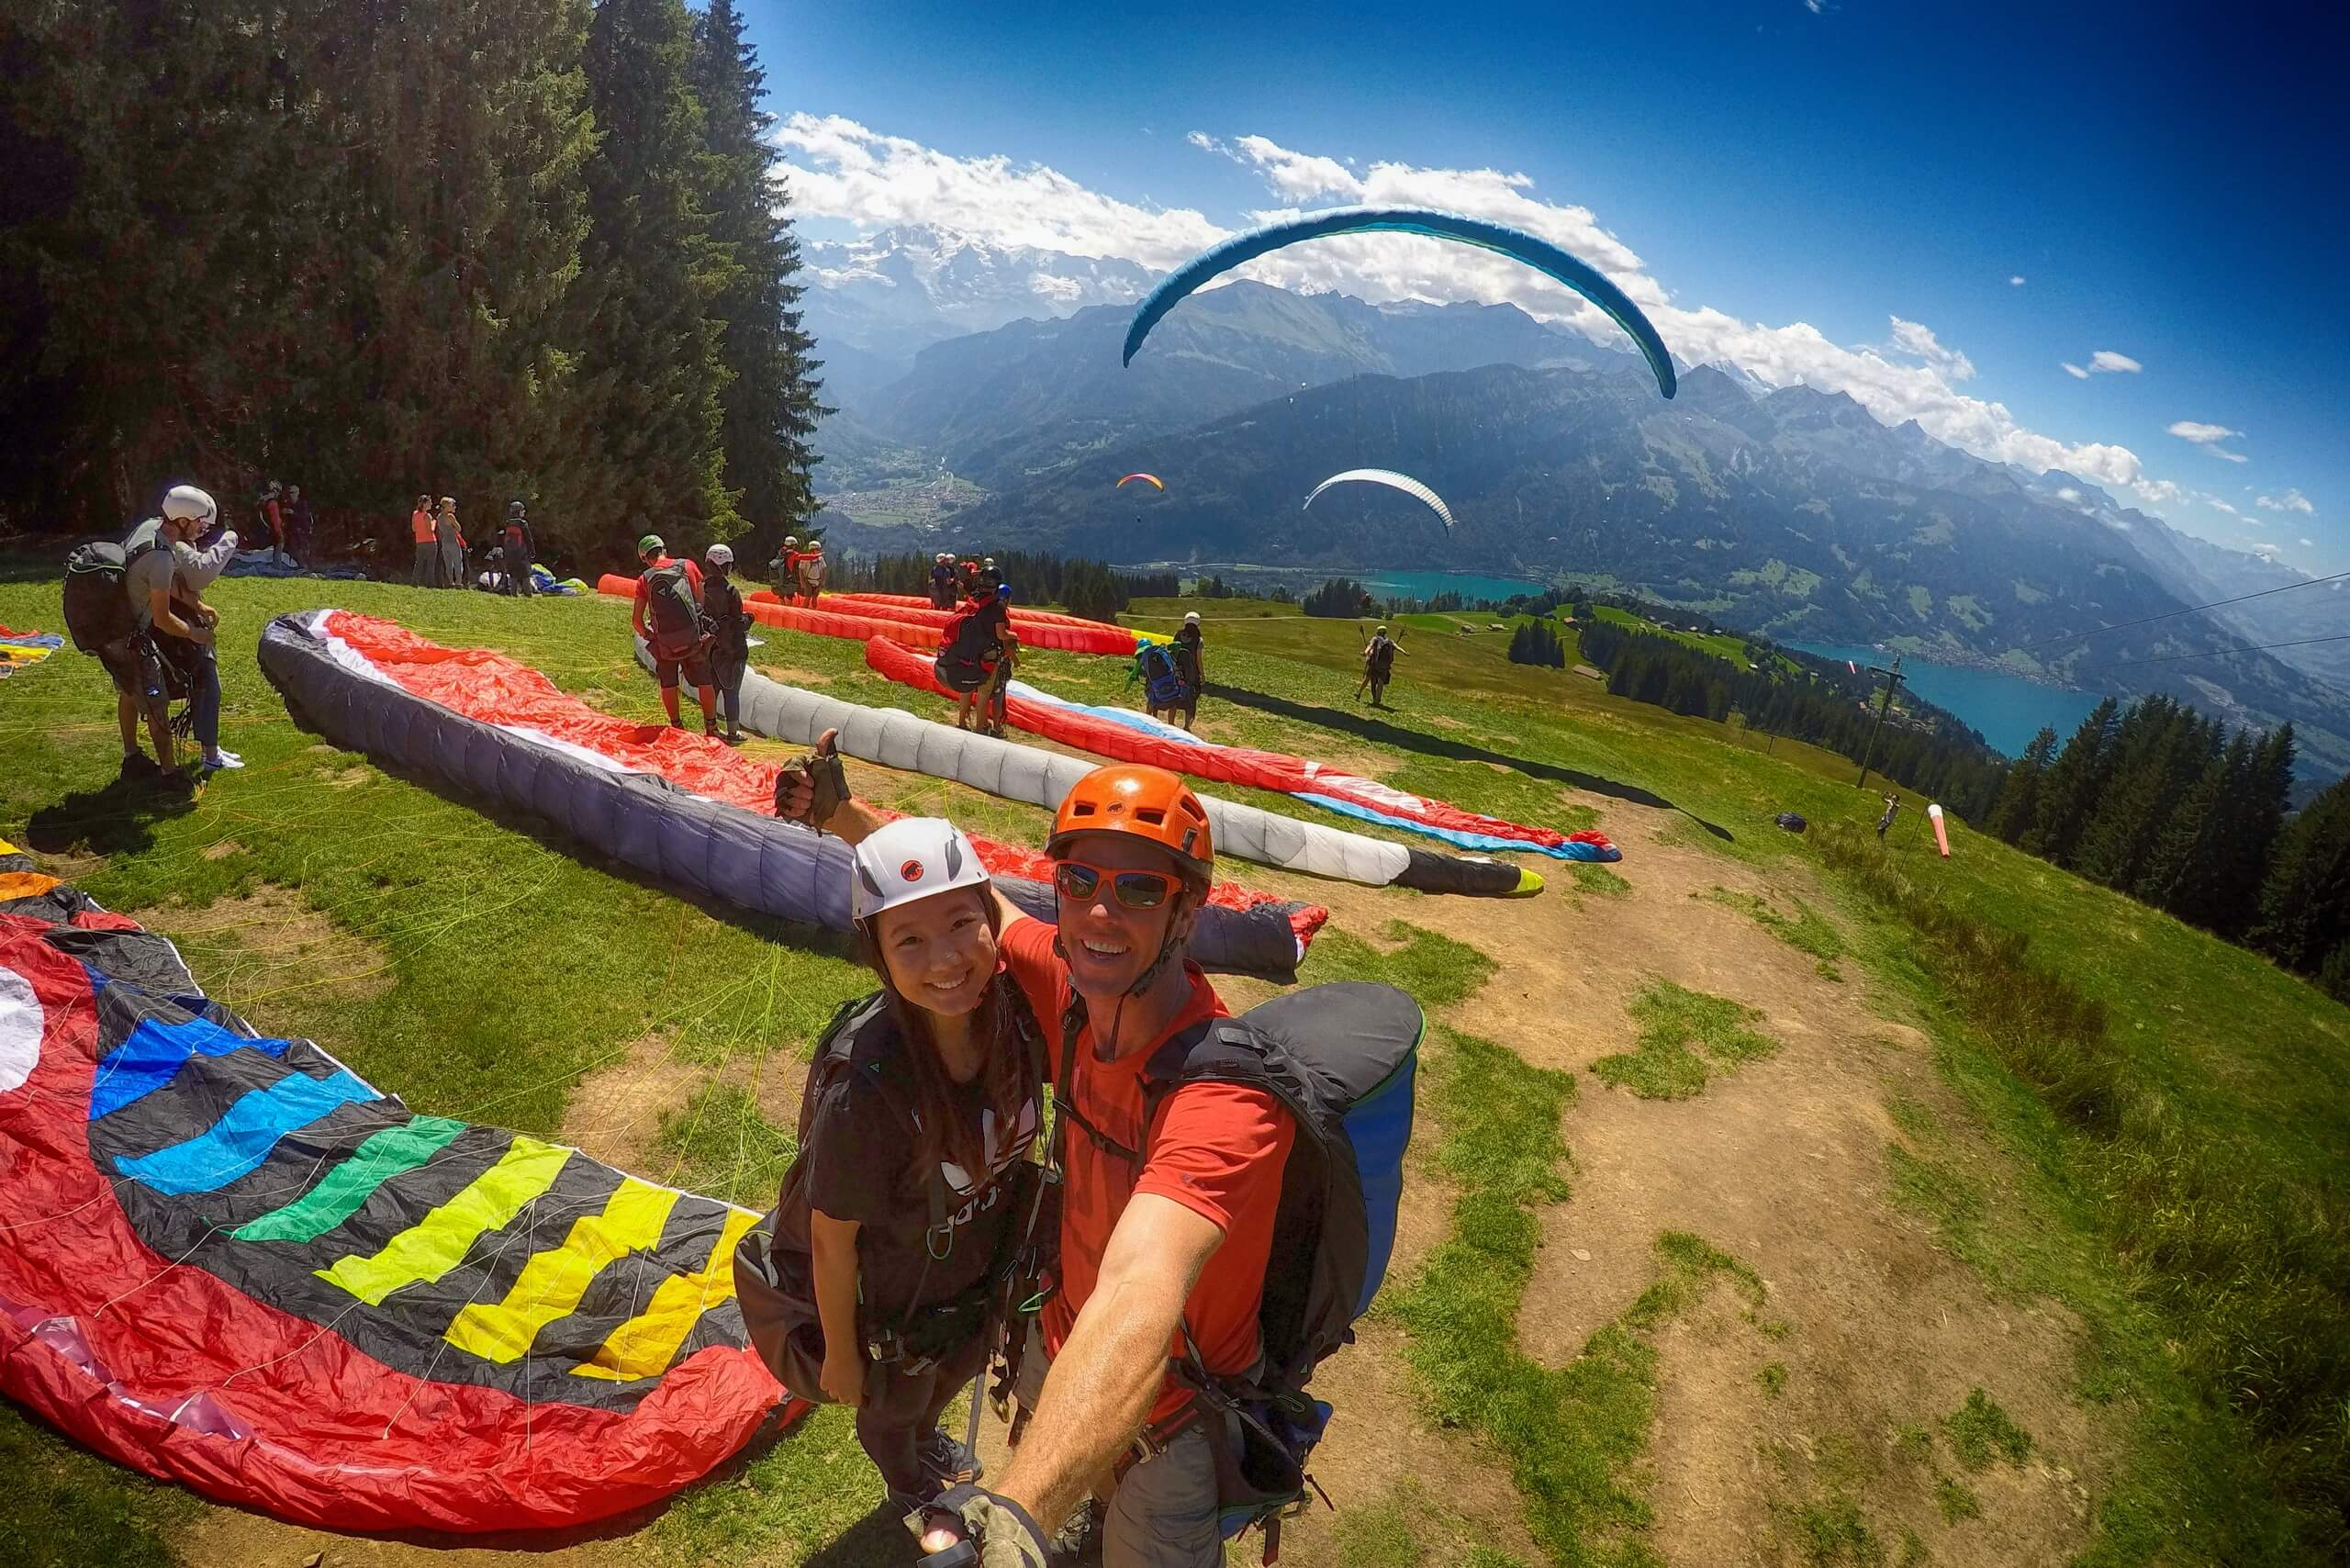 interlaken-paragliding-alpinair-sommer-interlaken-beatenberg